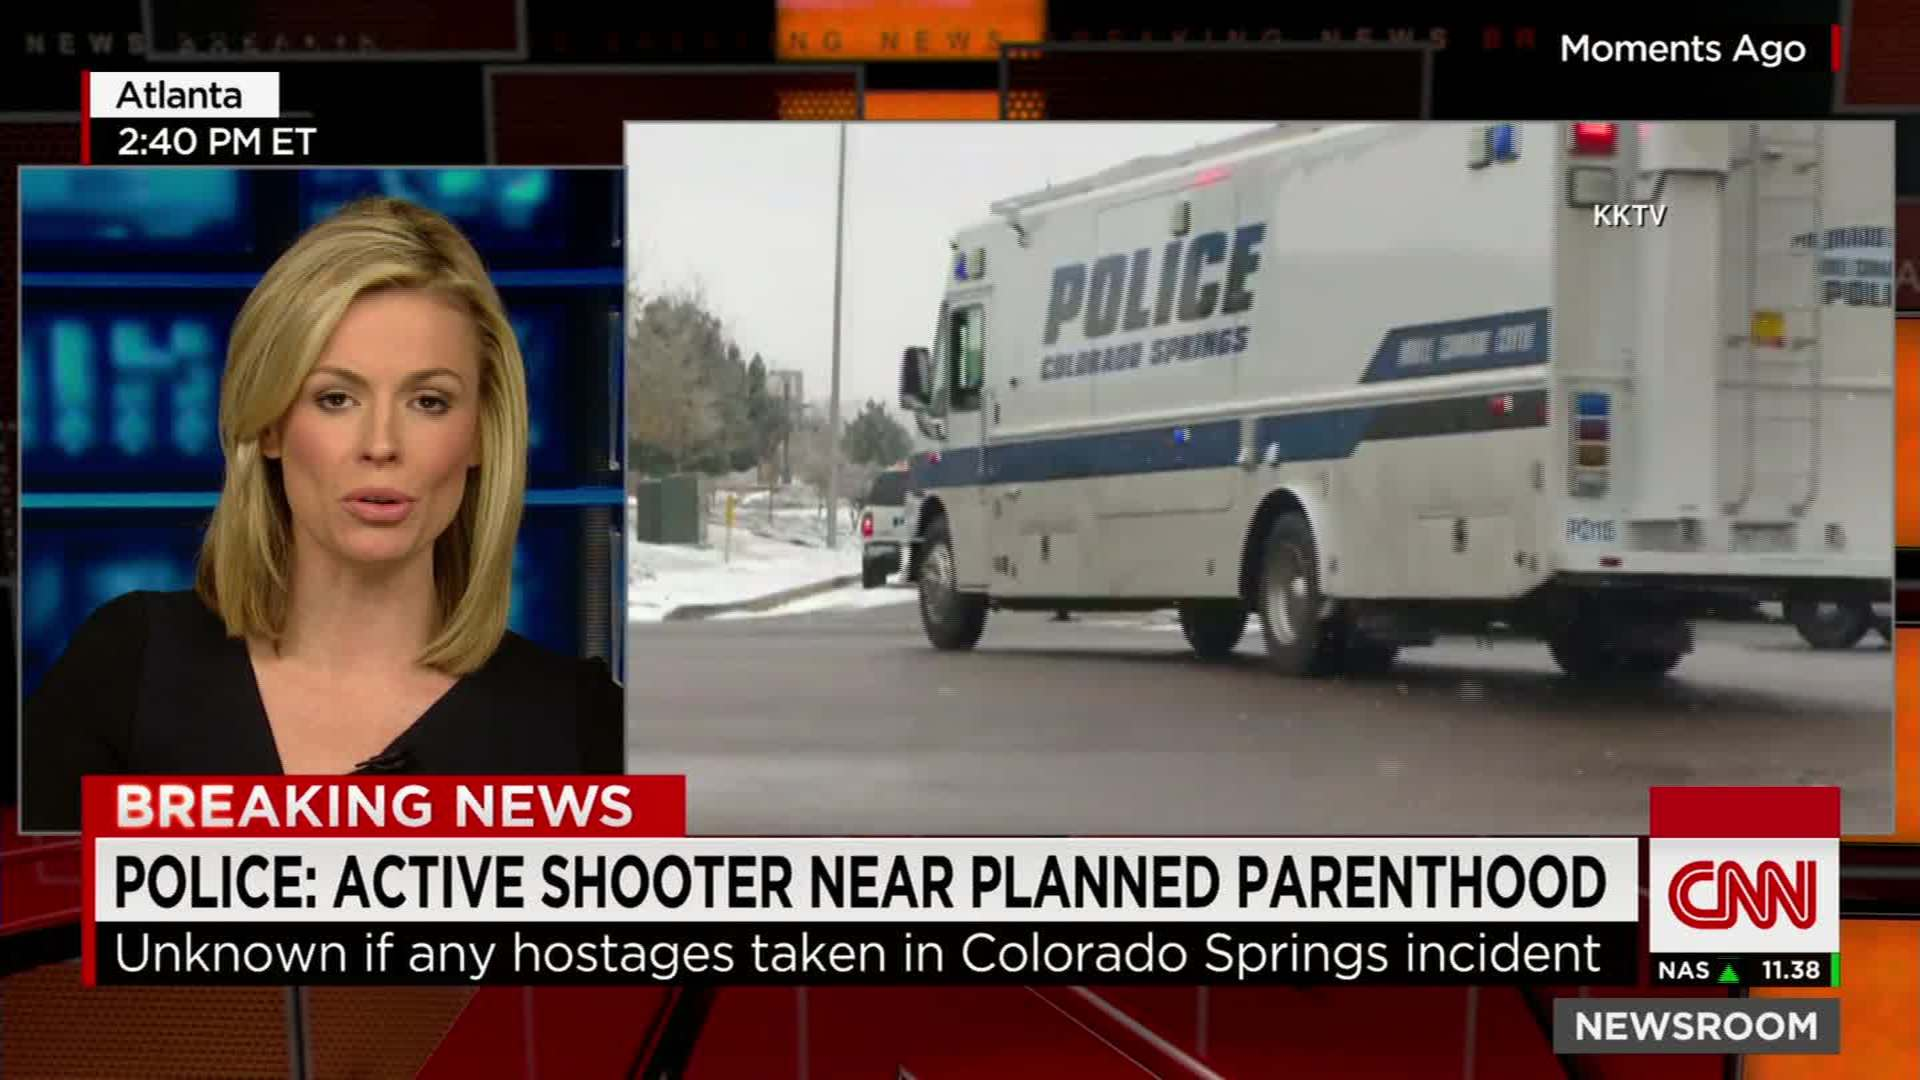 ATF responds to incident in Colorado Springs - CNN Video